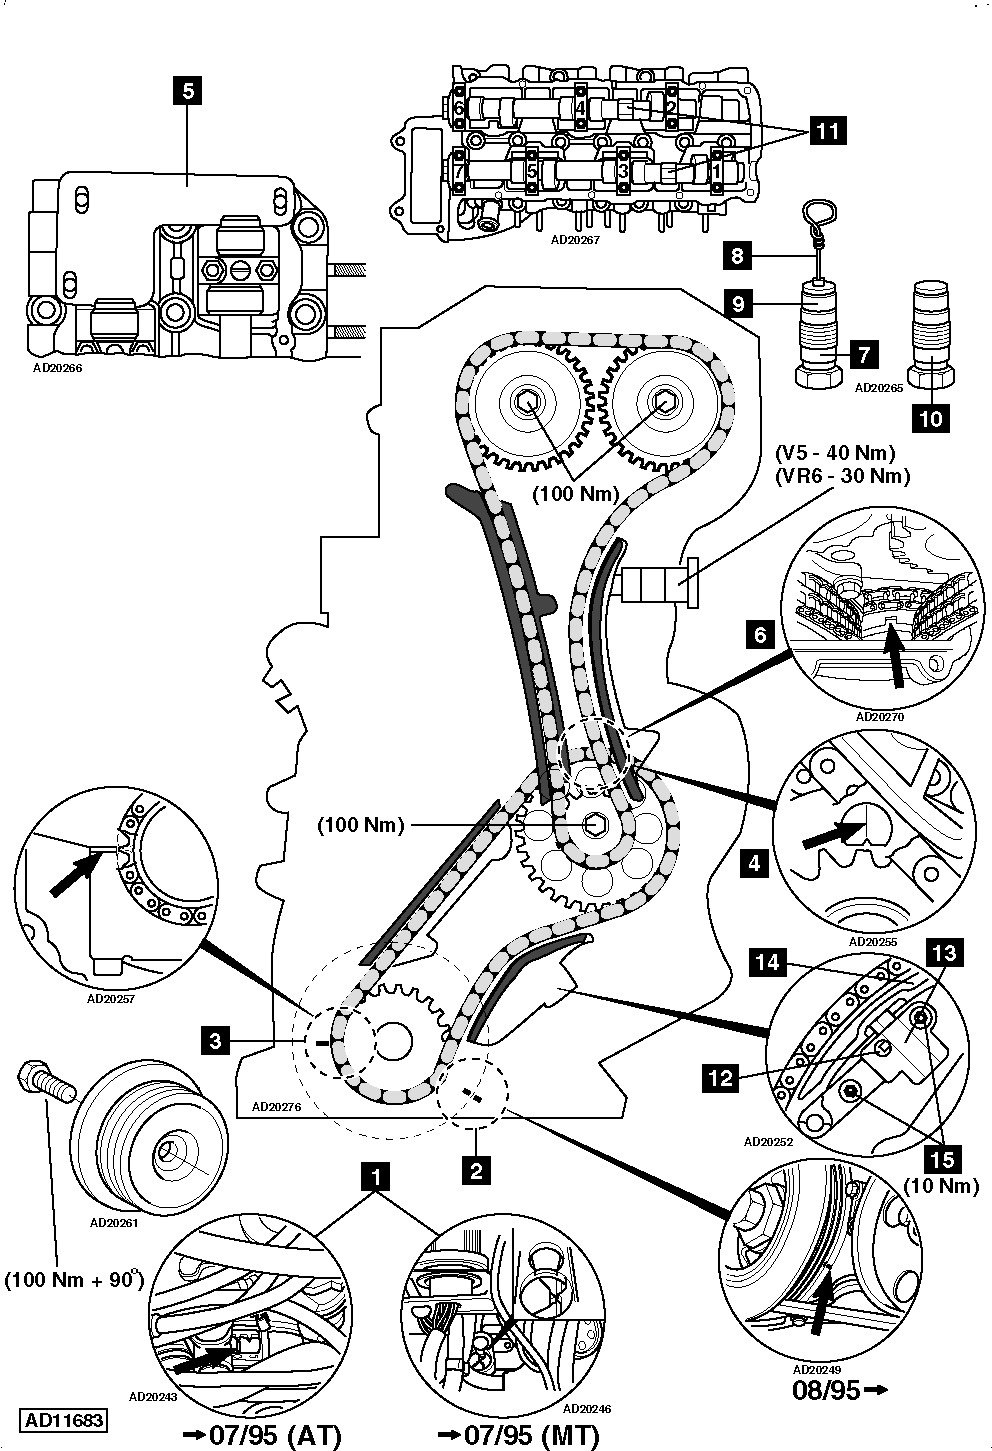 95 Jetta Engine Diagram Auto Electrical Wiring Vr6 Harness Related With